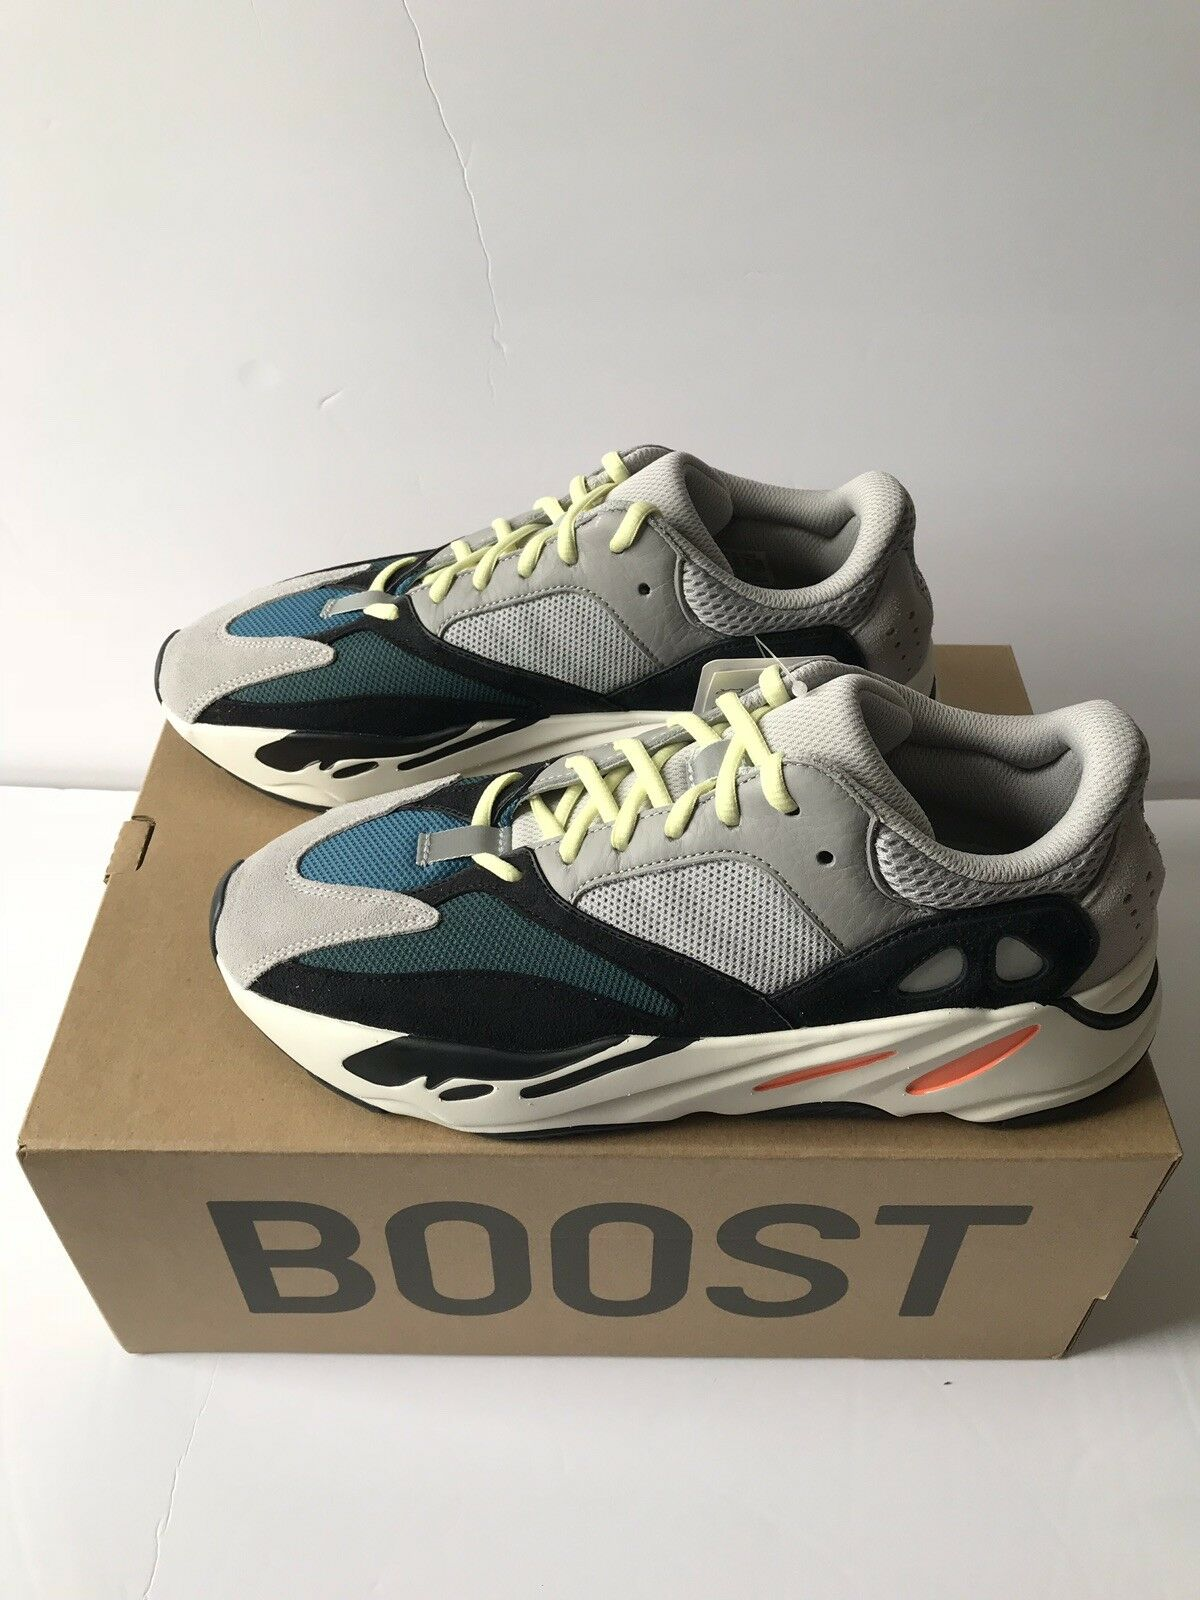 Adidas Yeezy Boost 700 Wave Runner Size 12 100% Authentic B75571